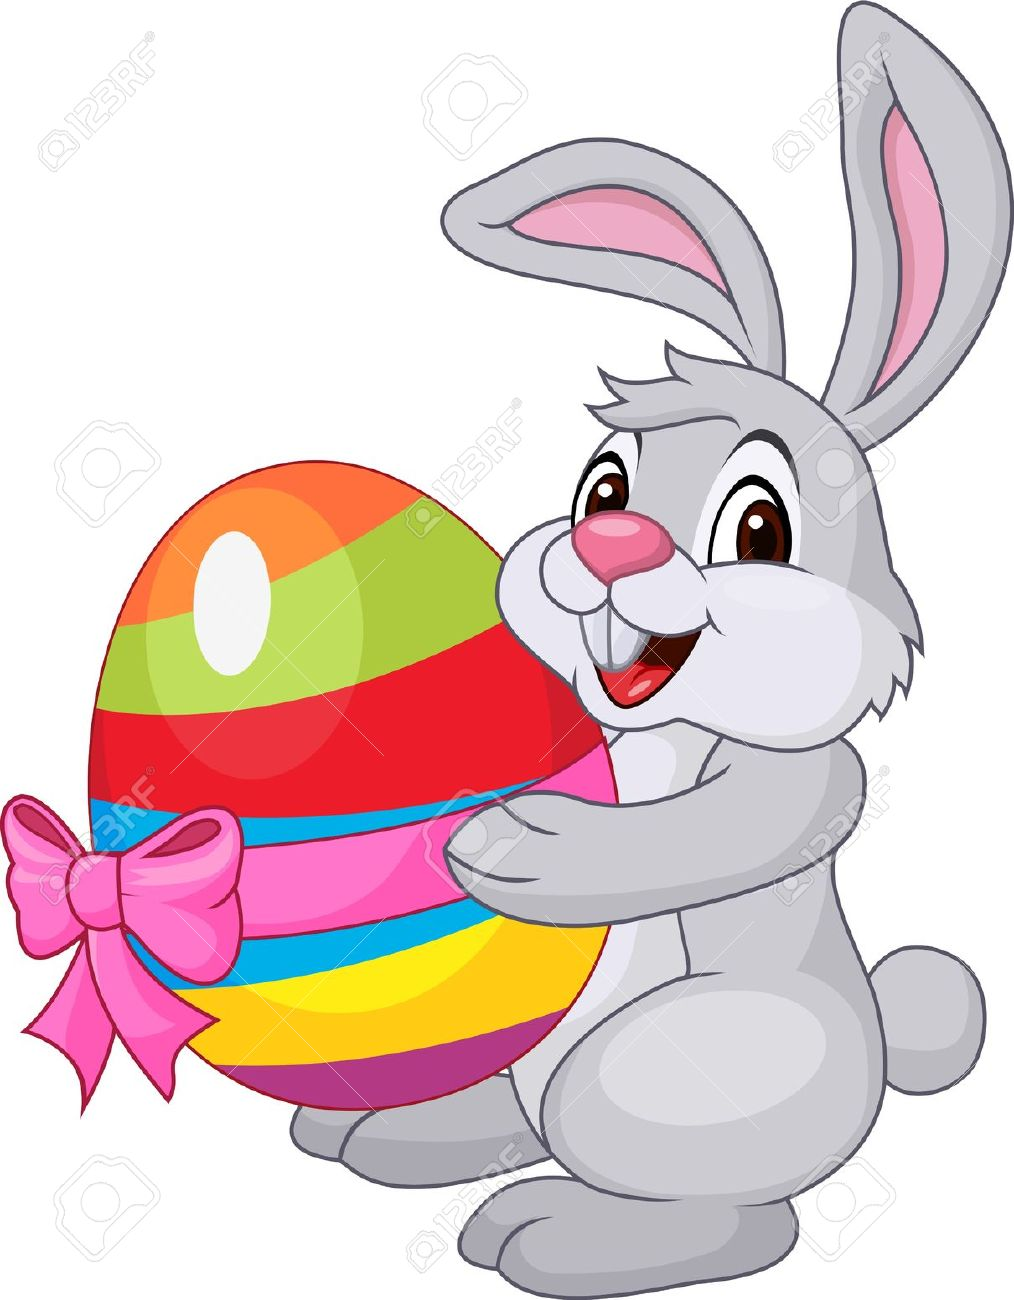 easter bunny clipart 6 clipart station rh clipartstation com easter bunny clipart free easter bunny clipart animated